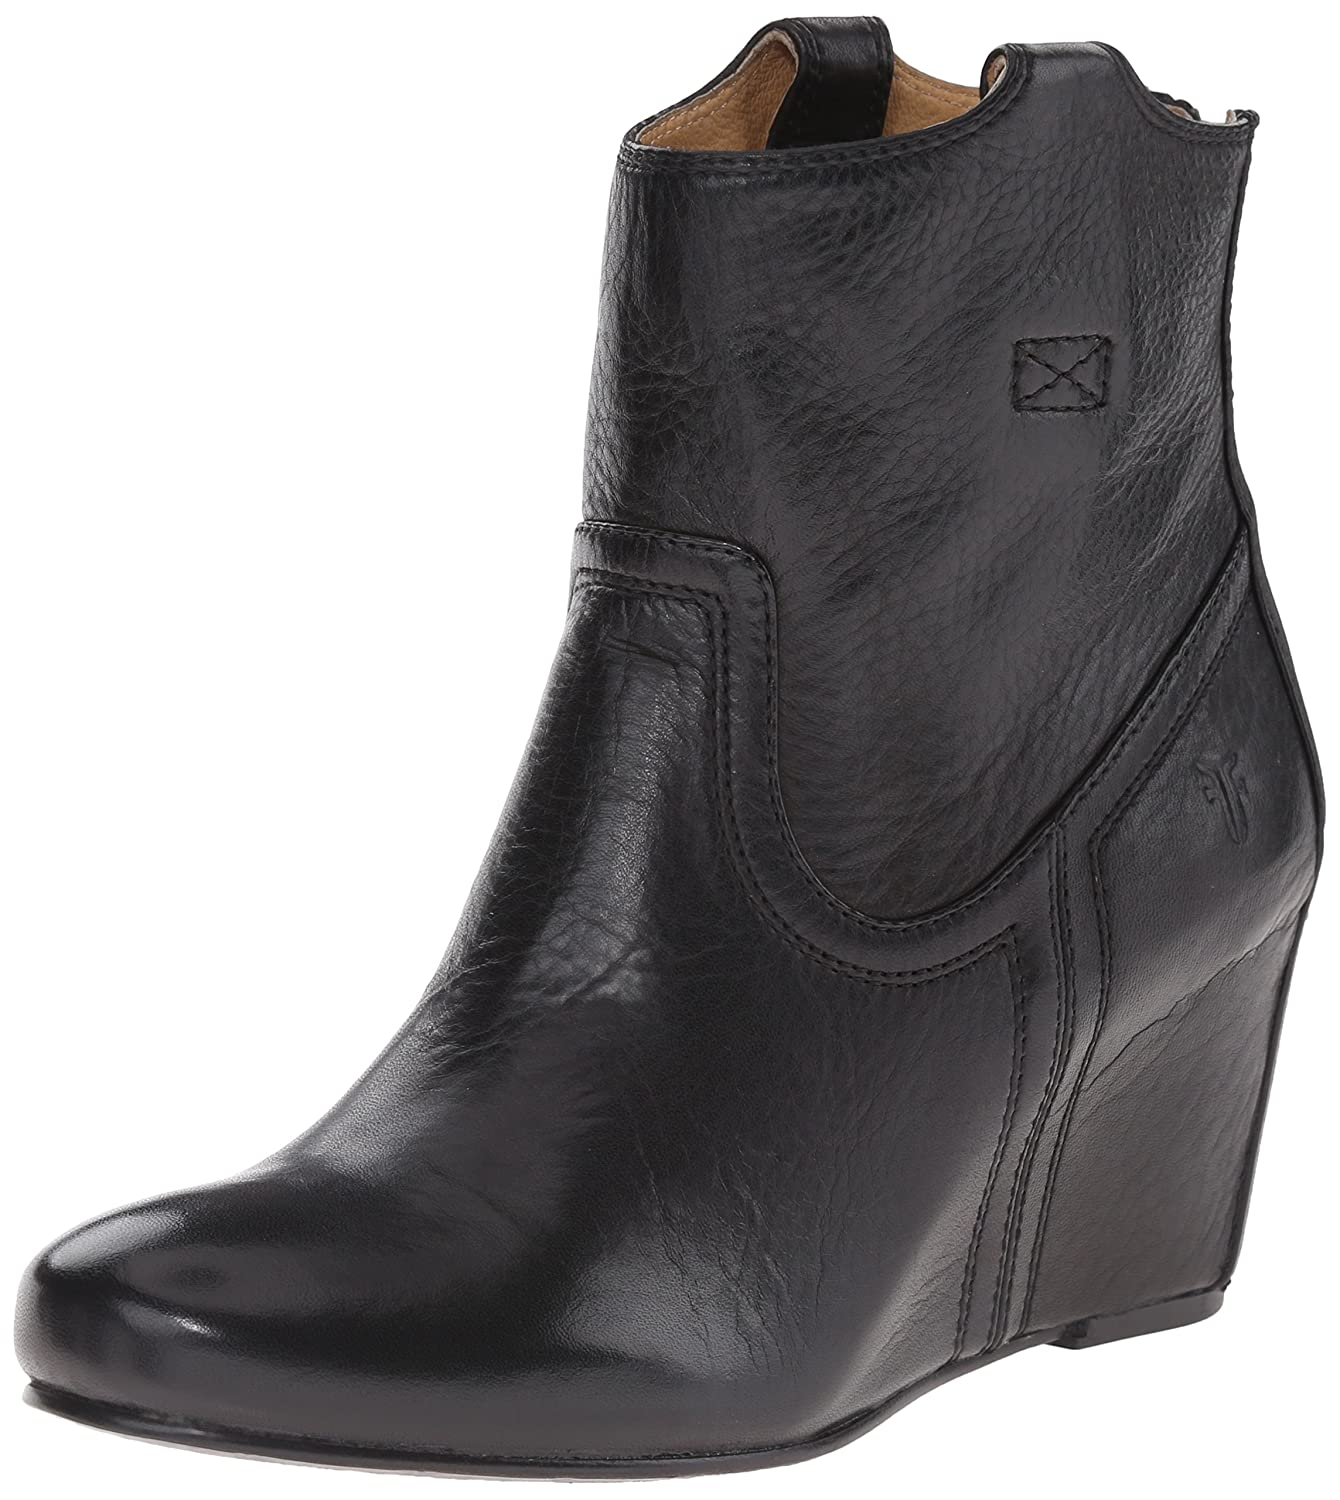 FRYE Women's Carson Wedge Bootie B00SSQITO2 8 B(M) US|Black